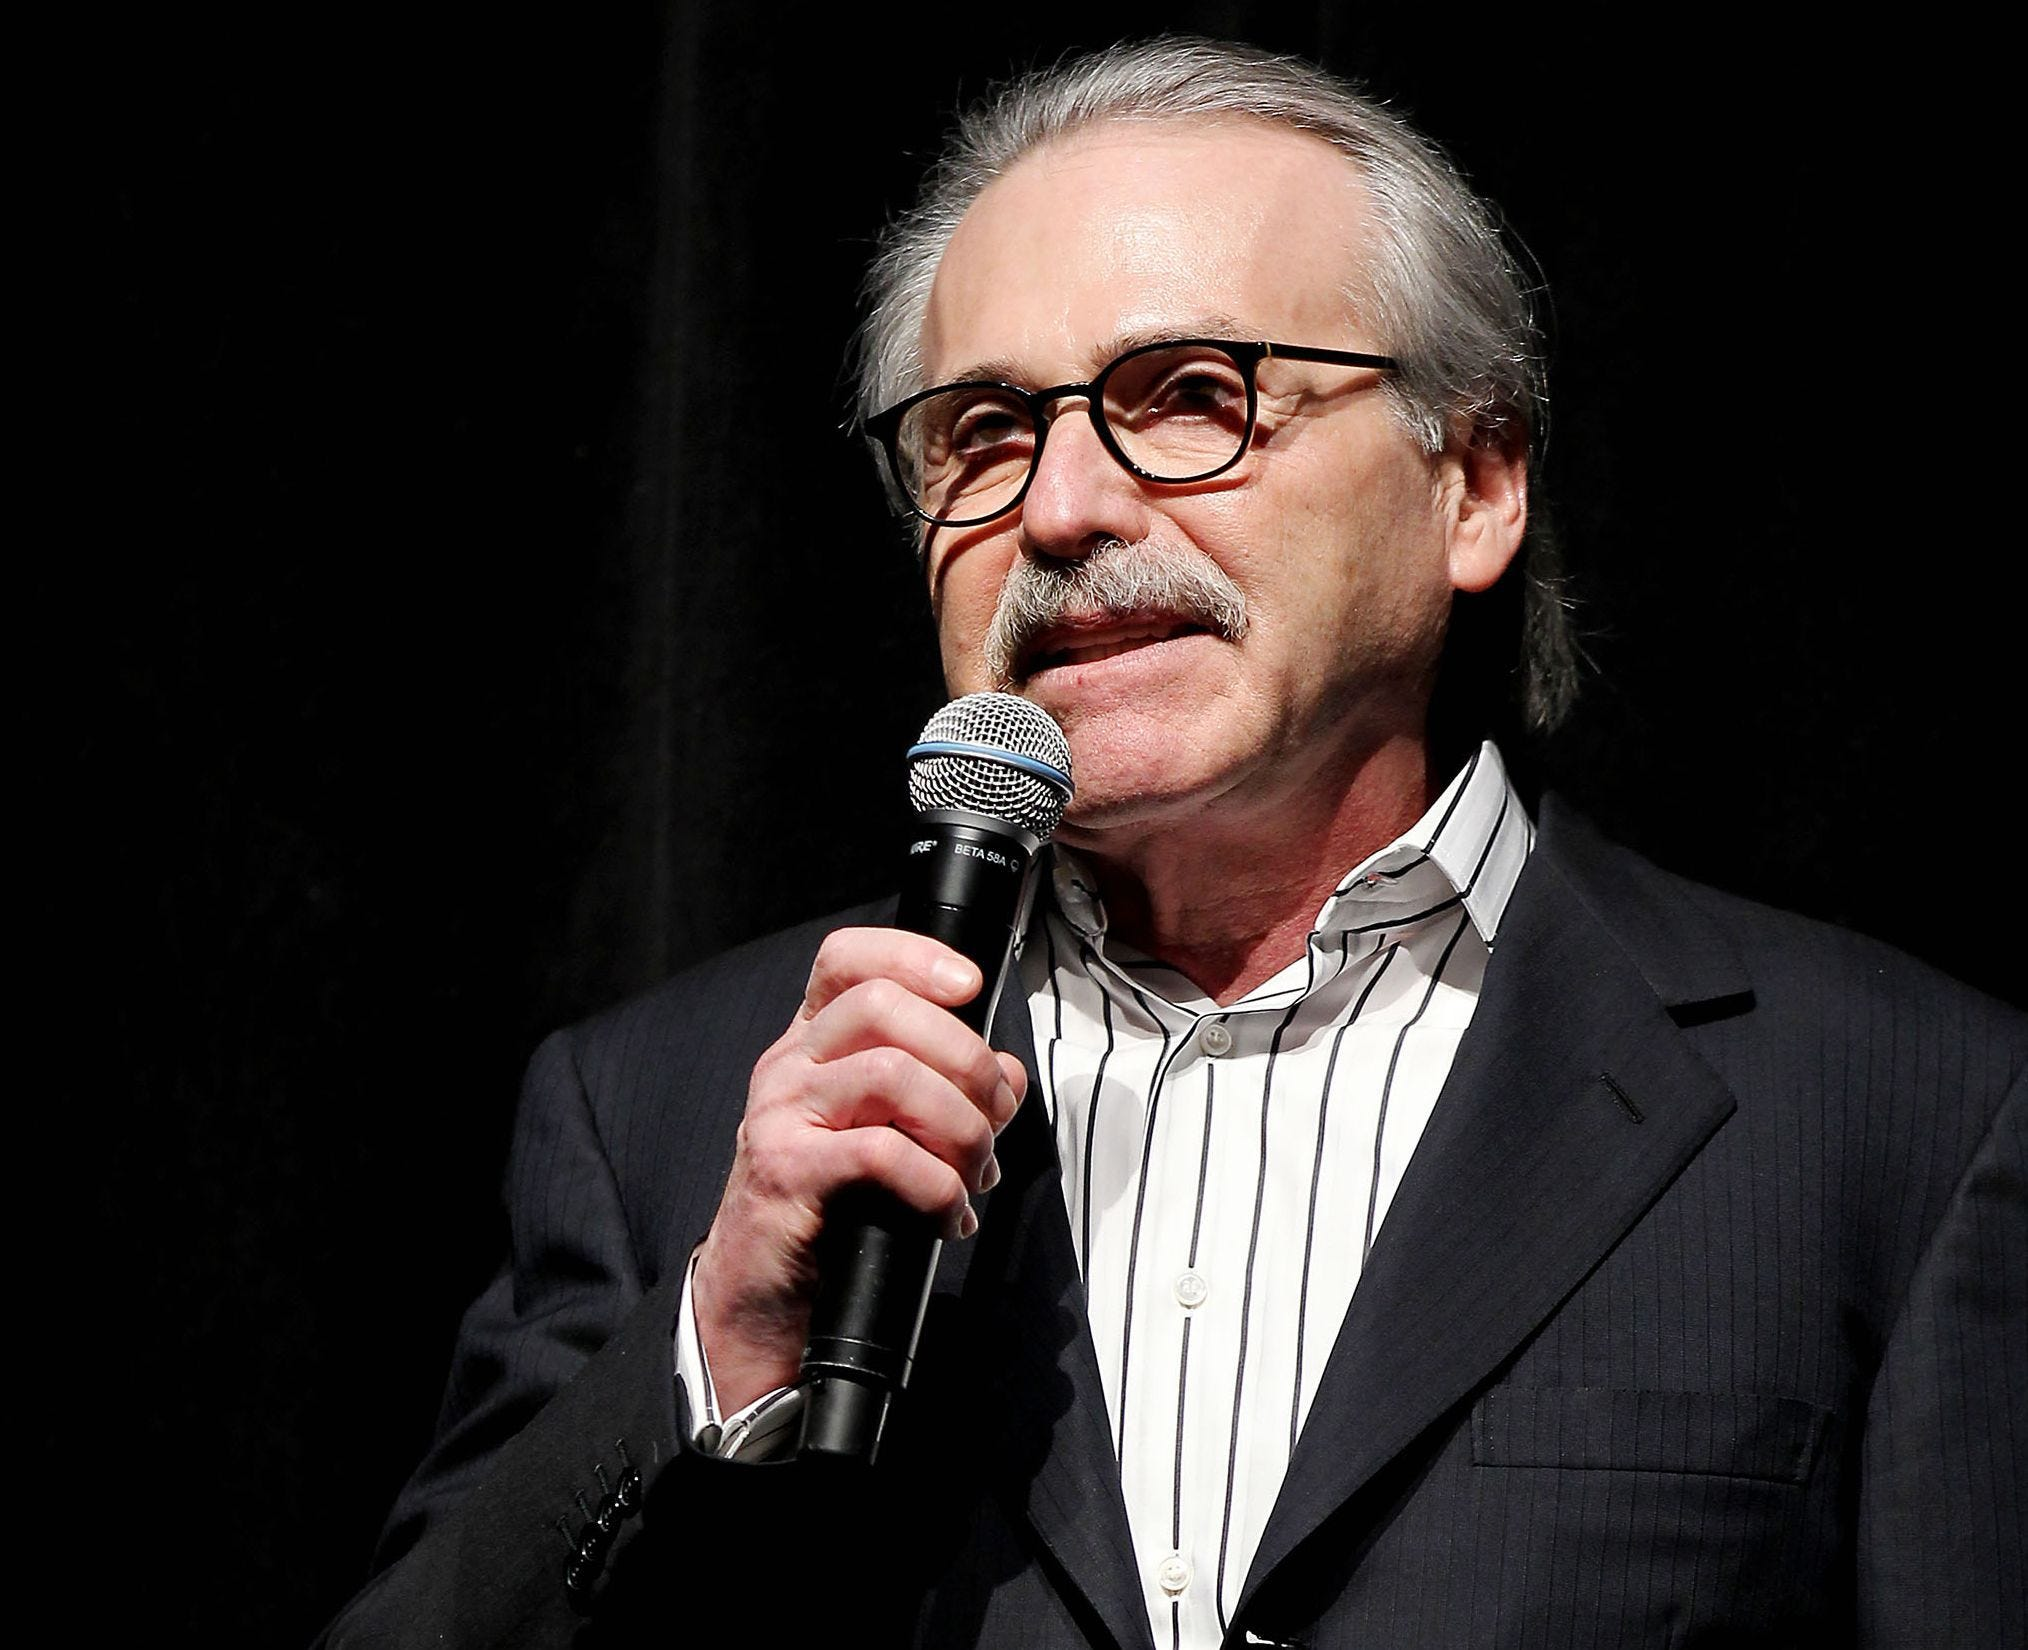 National Enquirer owner admits paying ex-Playboy model $150,000 to squelch story, help Trump campaign